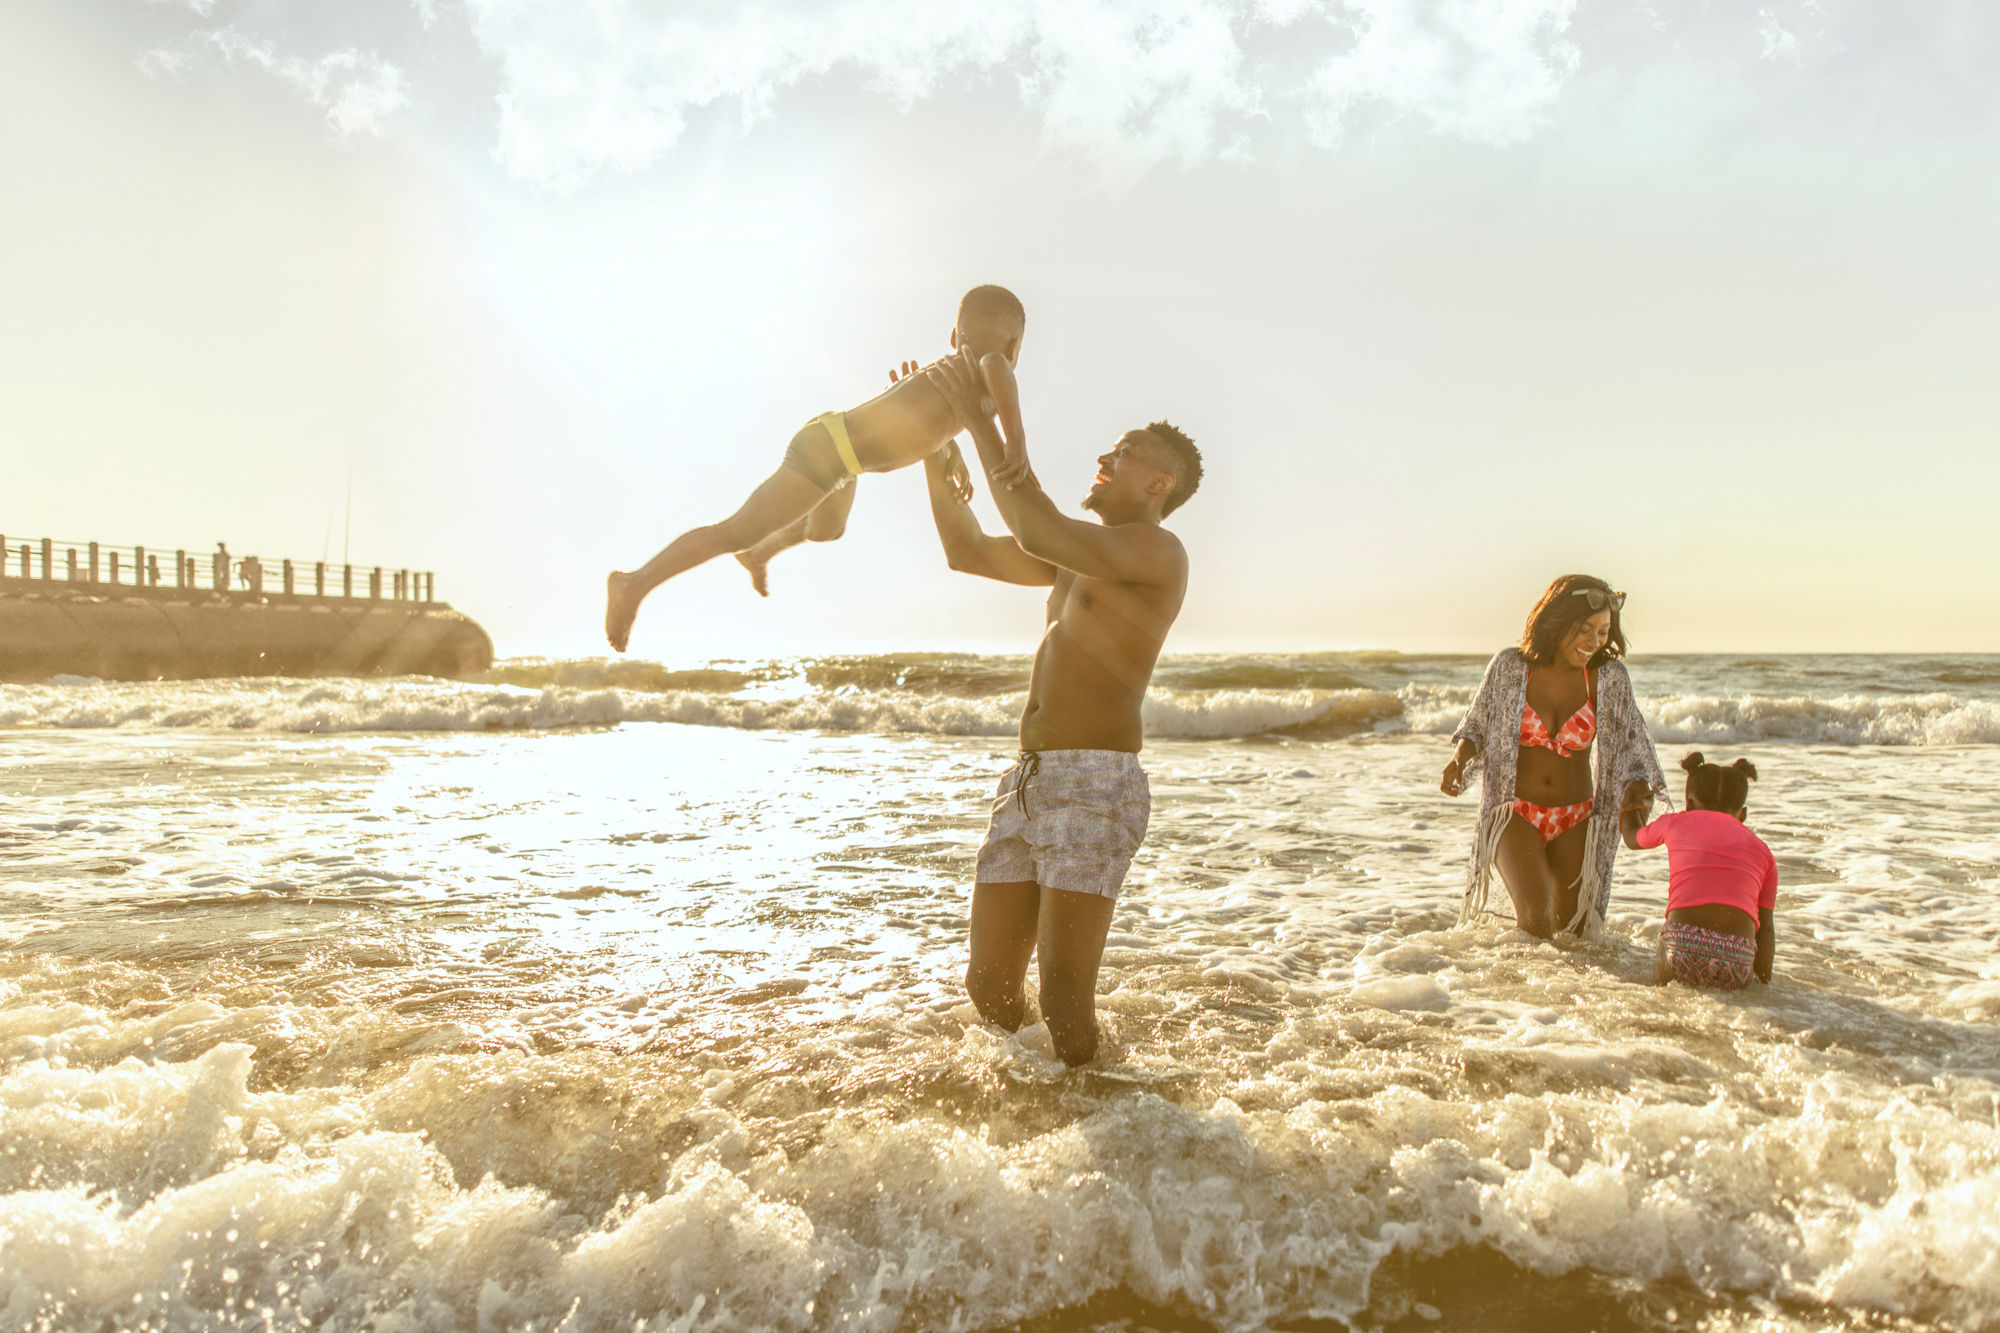 Image of family having fun on the beach in Durban for Tsogo Sun's Image Library & Content Library by Michelle Wastie Photography